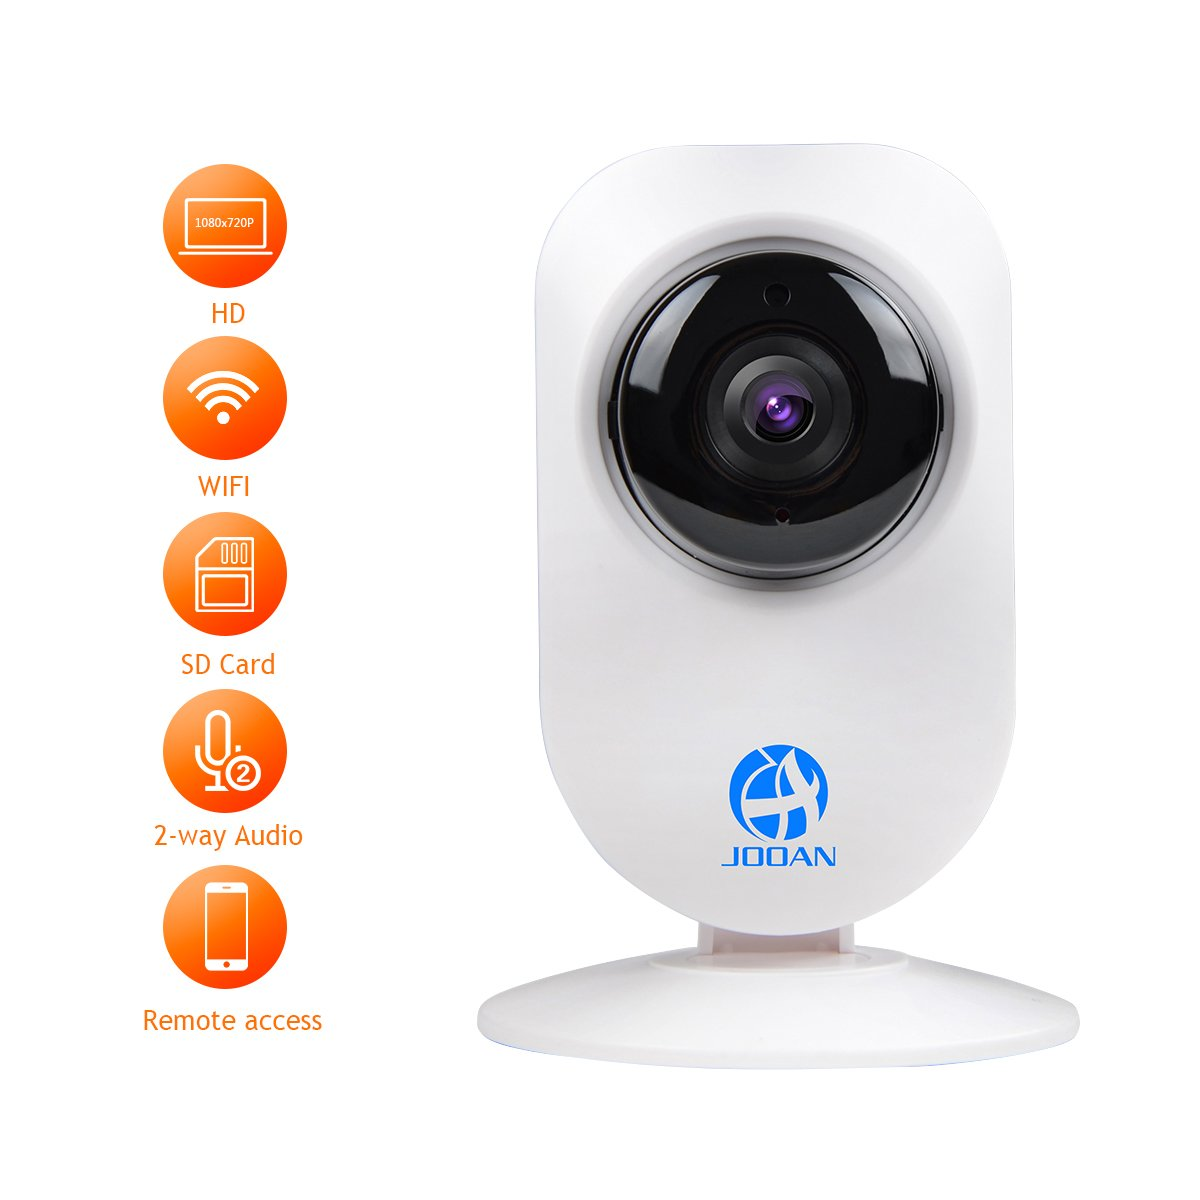 JOOAN 720P HD IP Camera WiFi Video Monitoring Supports Two Way Audio and Remote Monitoring 720P WiFi Camera Supports 2.4G WiFi Surveillance WiFi Camera